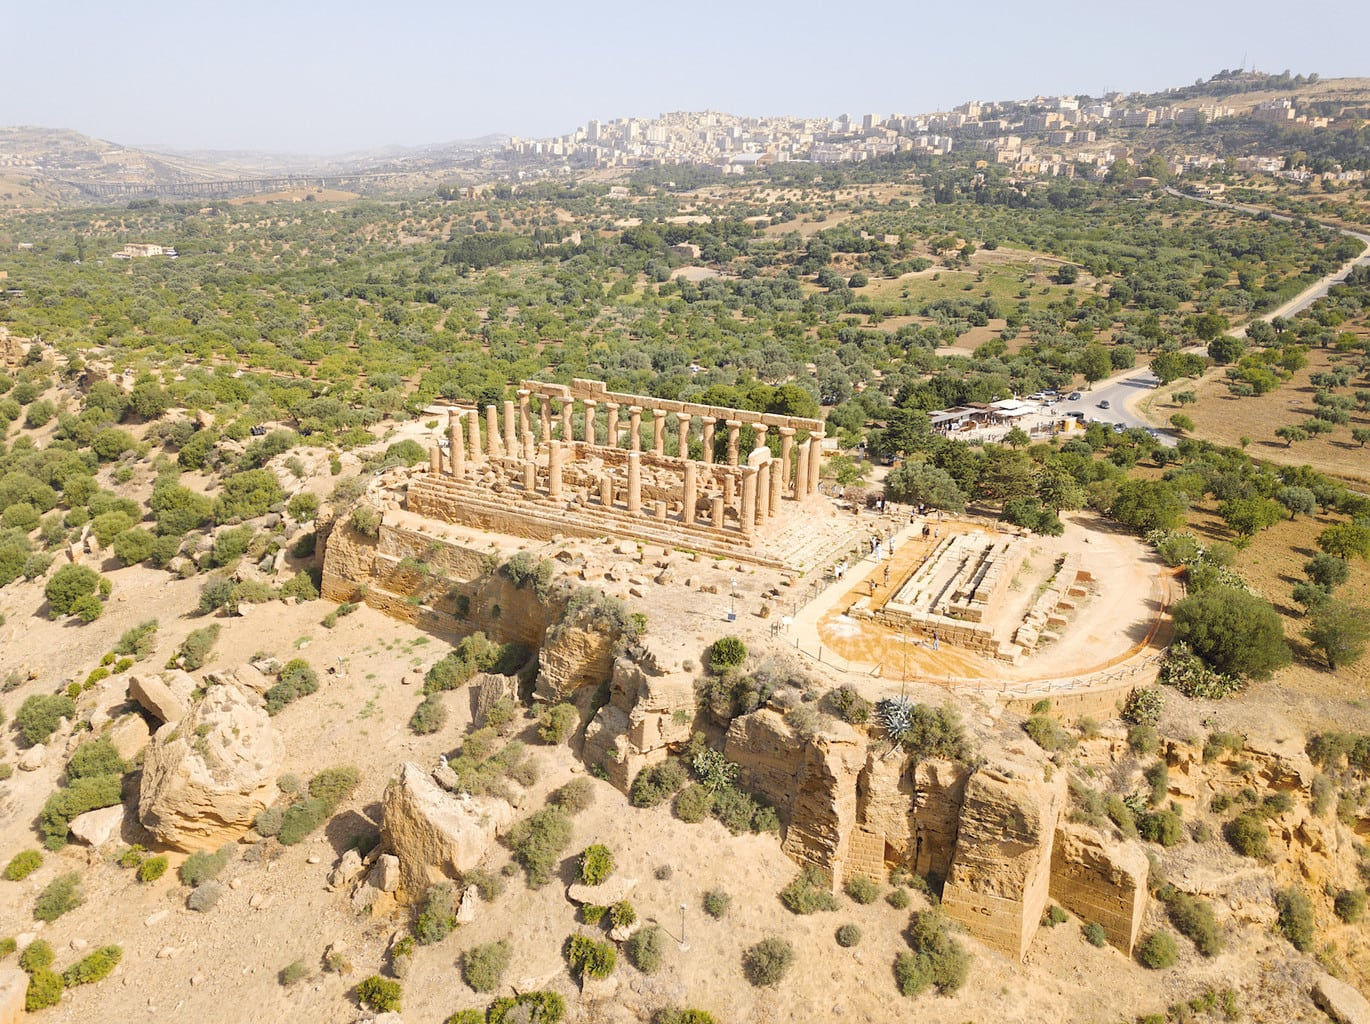 Aerial shot of The Valley of Temples